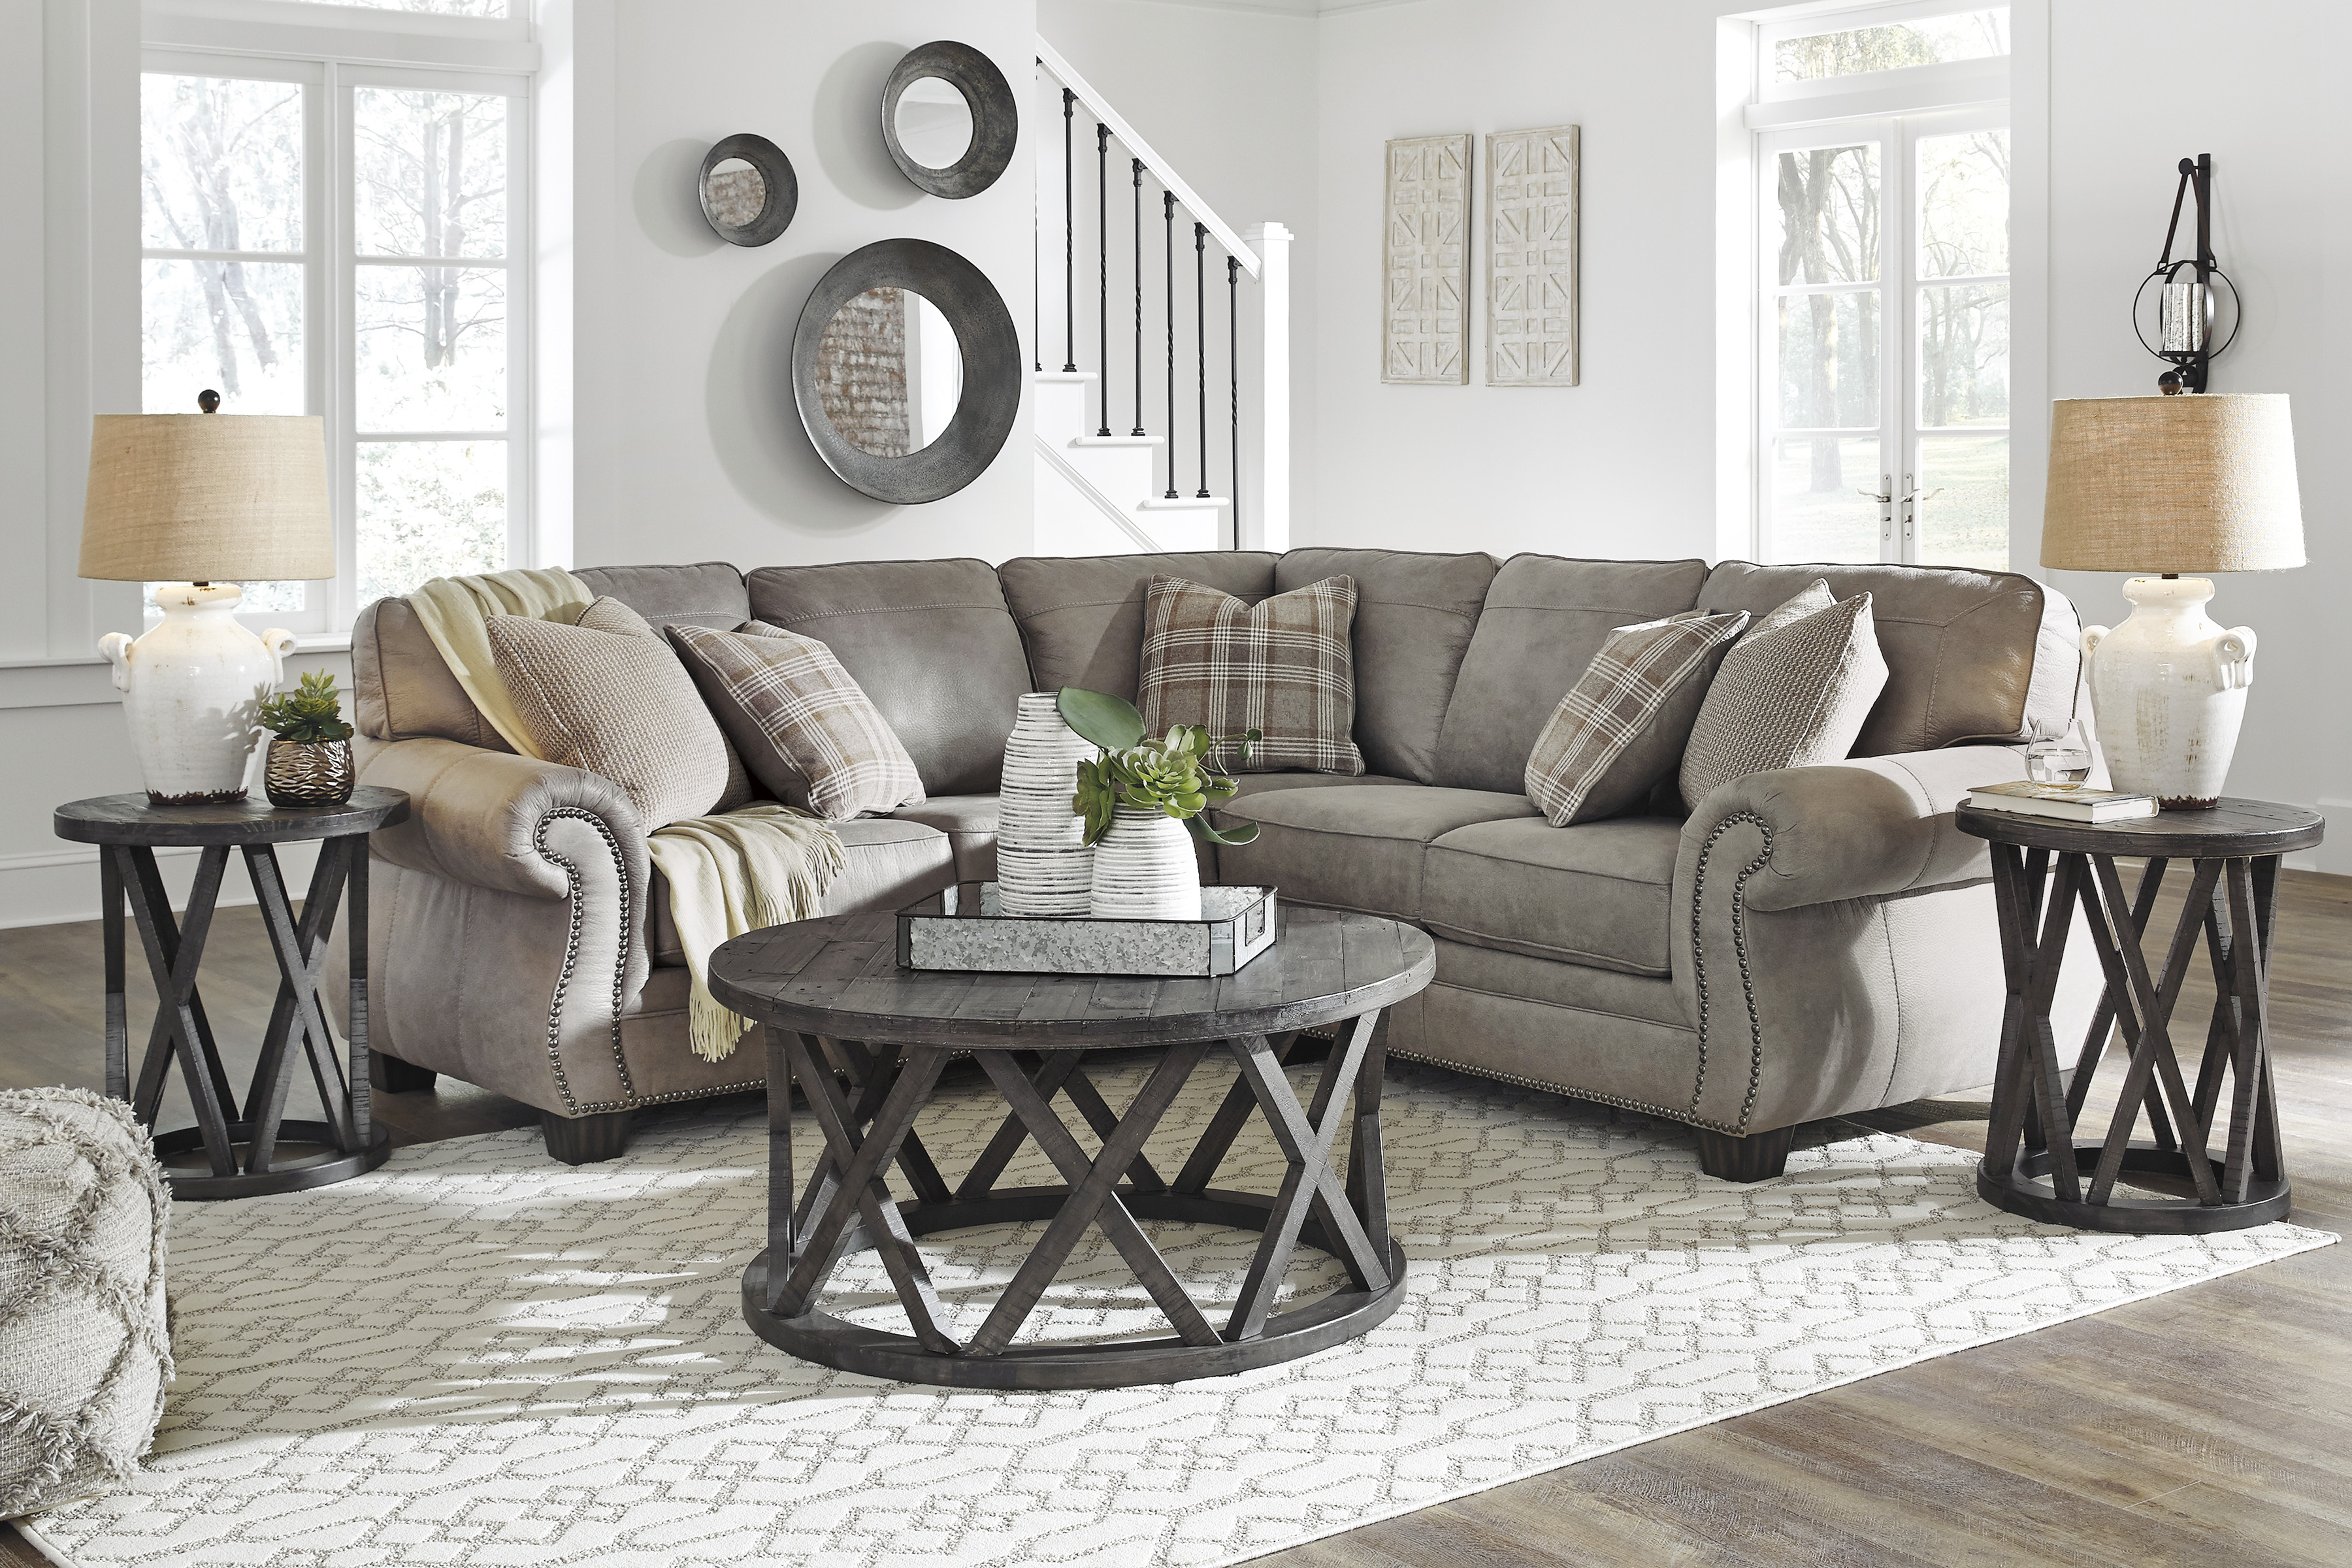 Clyde Grey Leather 3 Piece Power Reclining Sectionals With Pwr Hdrst & Usb With Well Liked Chair Fabulous Three Piece Sectional Sofa Designed – Gotteamdesigns (View 15 of 20)